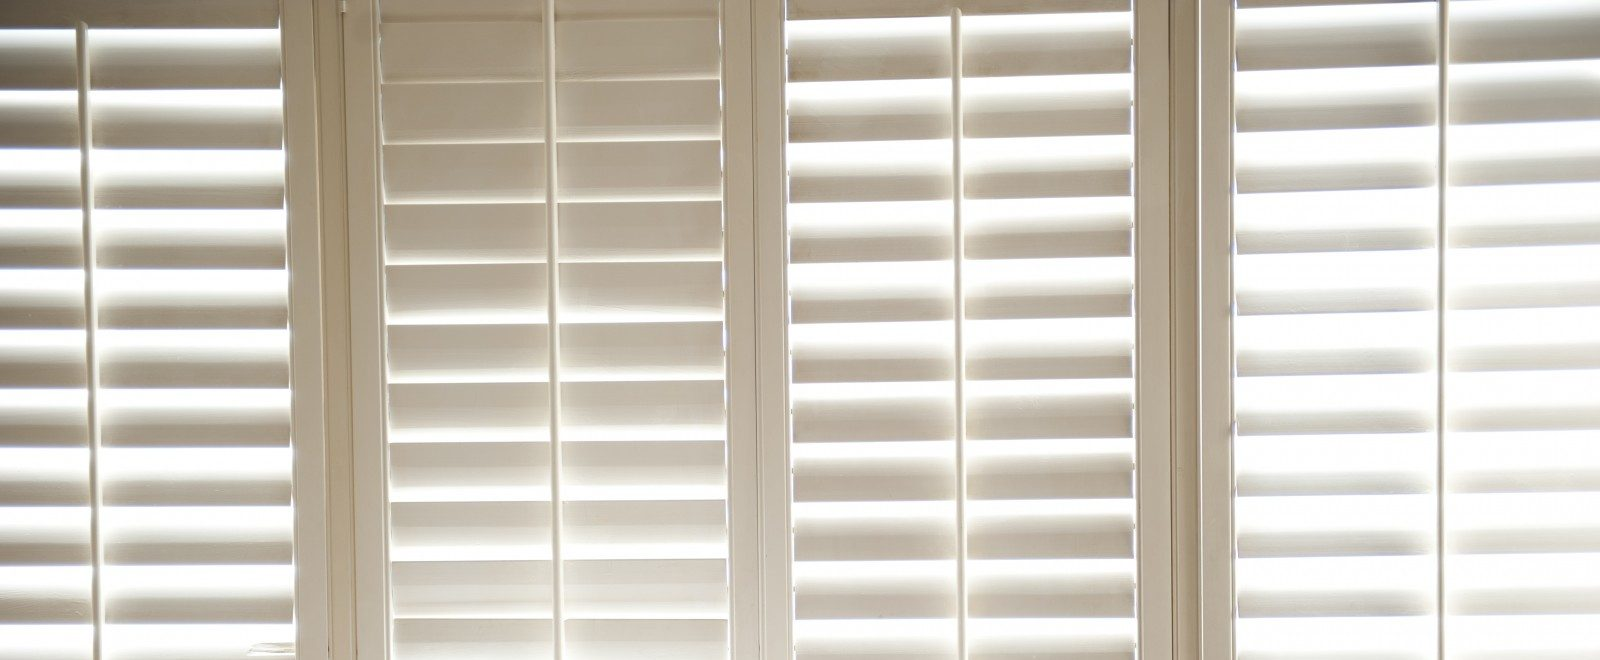 Types of shutters a guide to the different types of shutters by shuttersouth - Types shutters consider windows ...